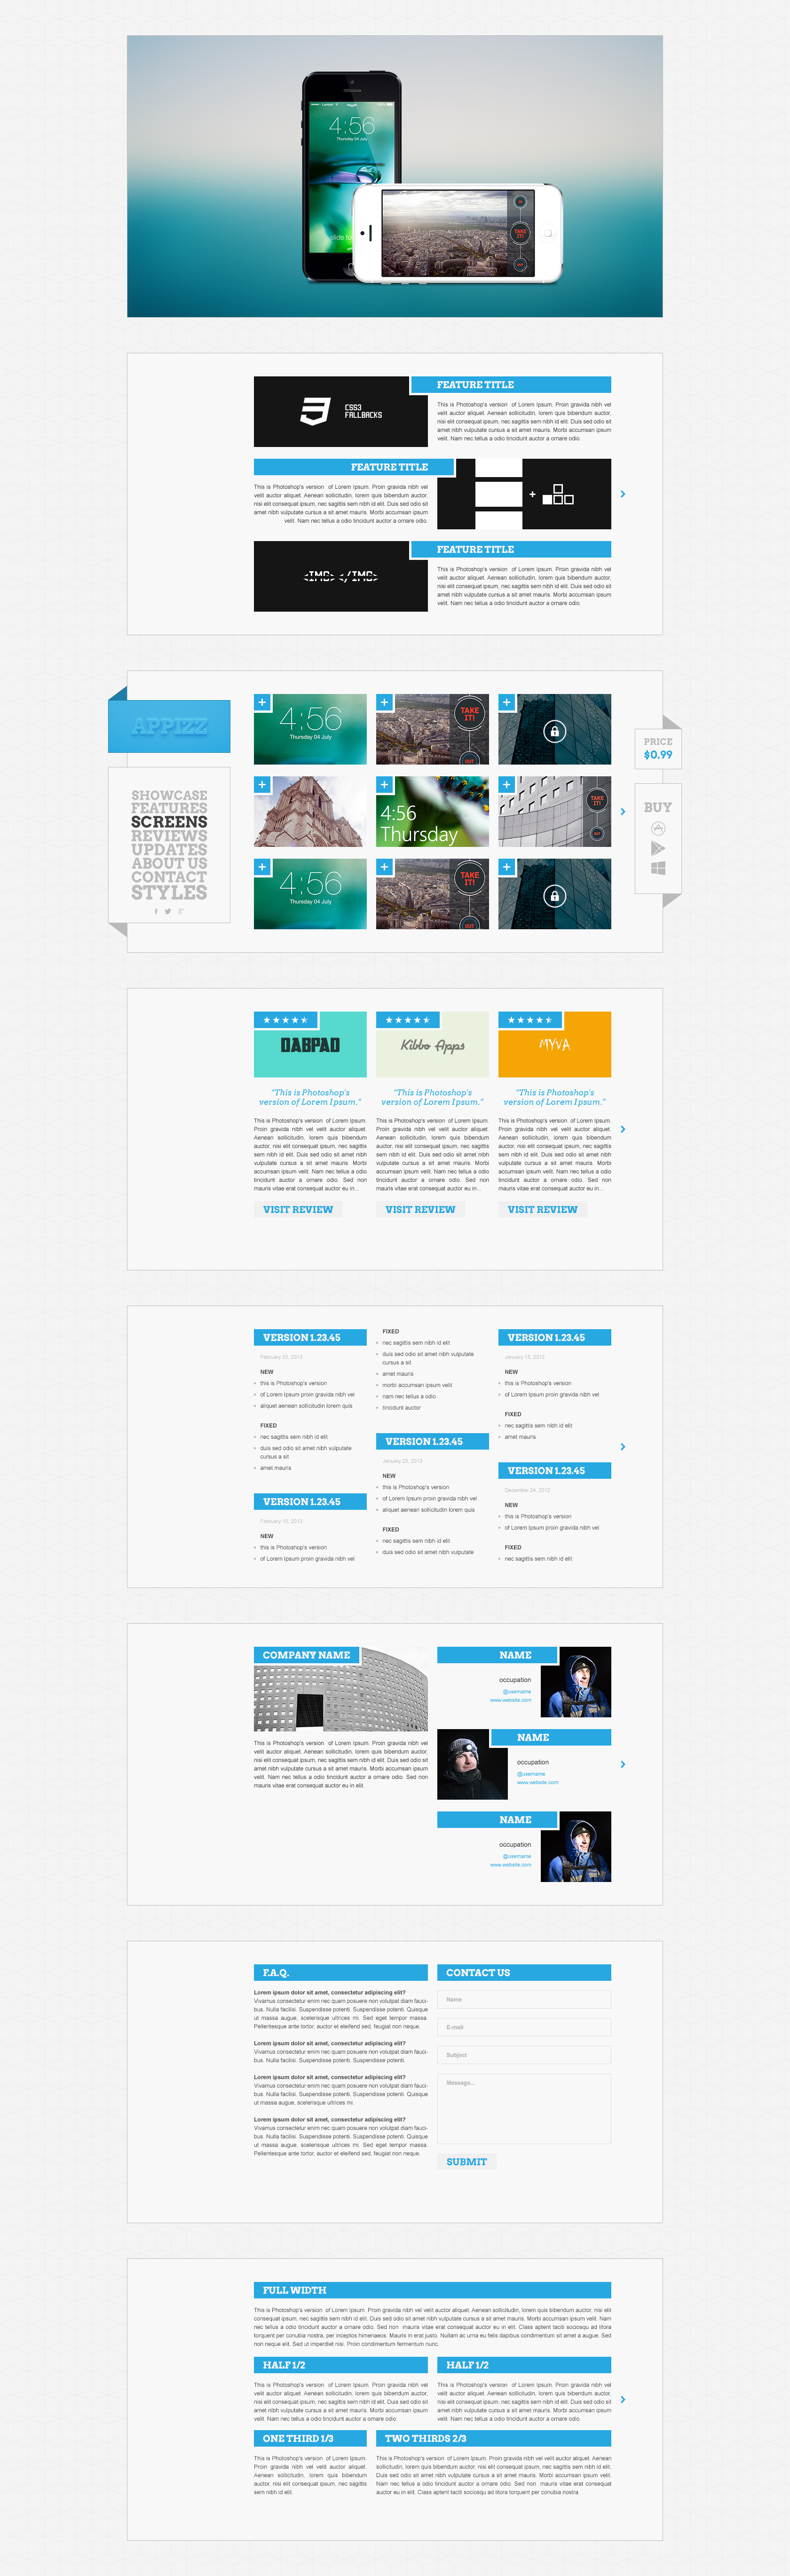 Appizz Mobile App Showcase HTML Template by Lumiart